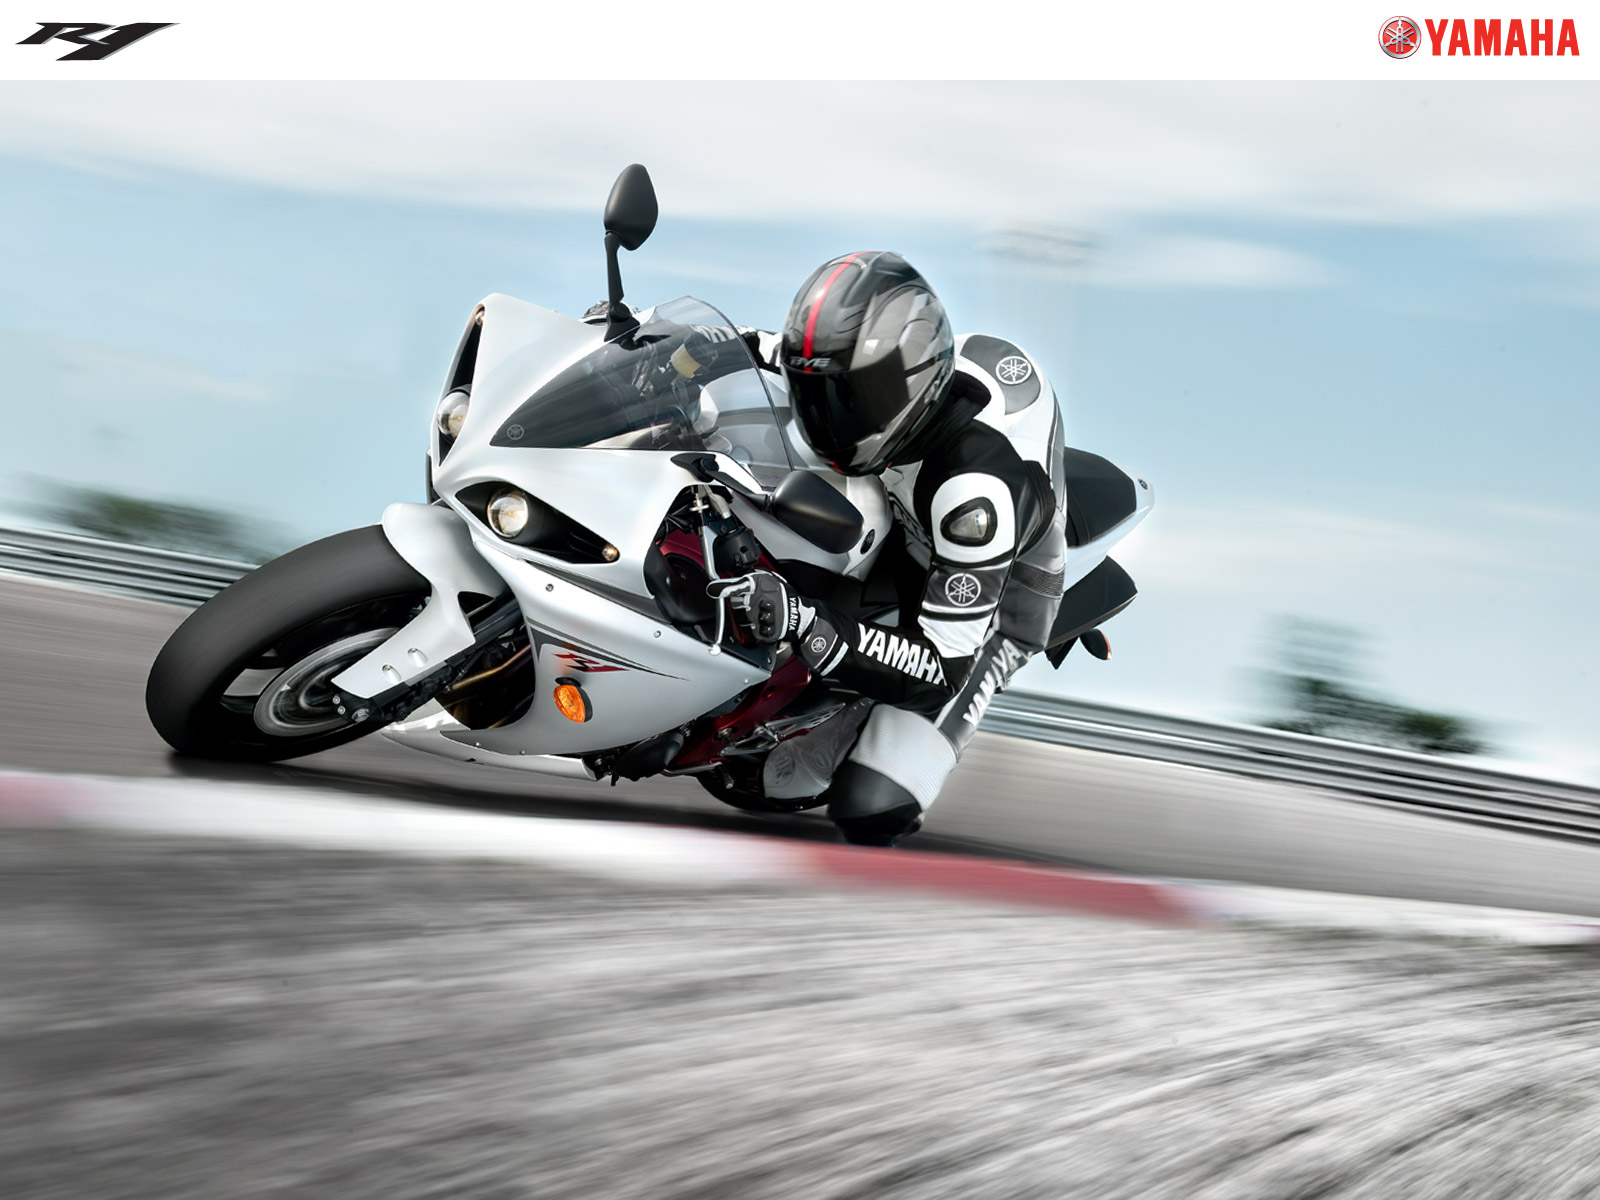 yamaha-r1-wallpaper-4